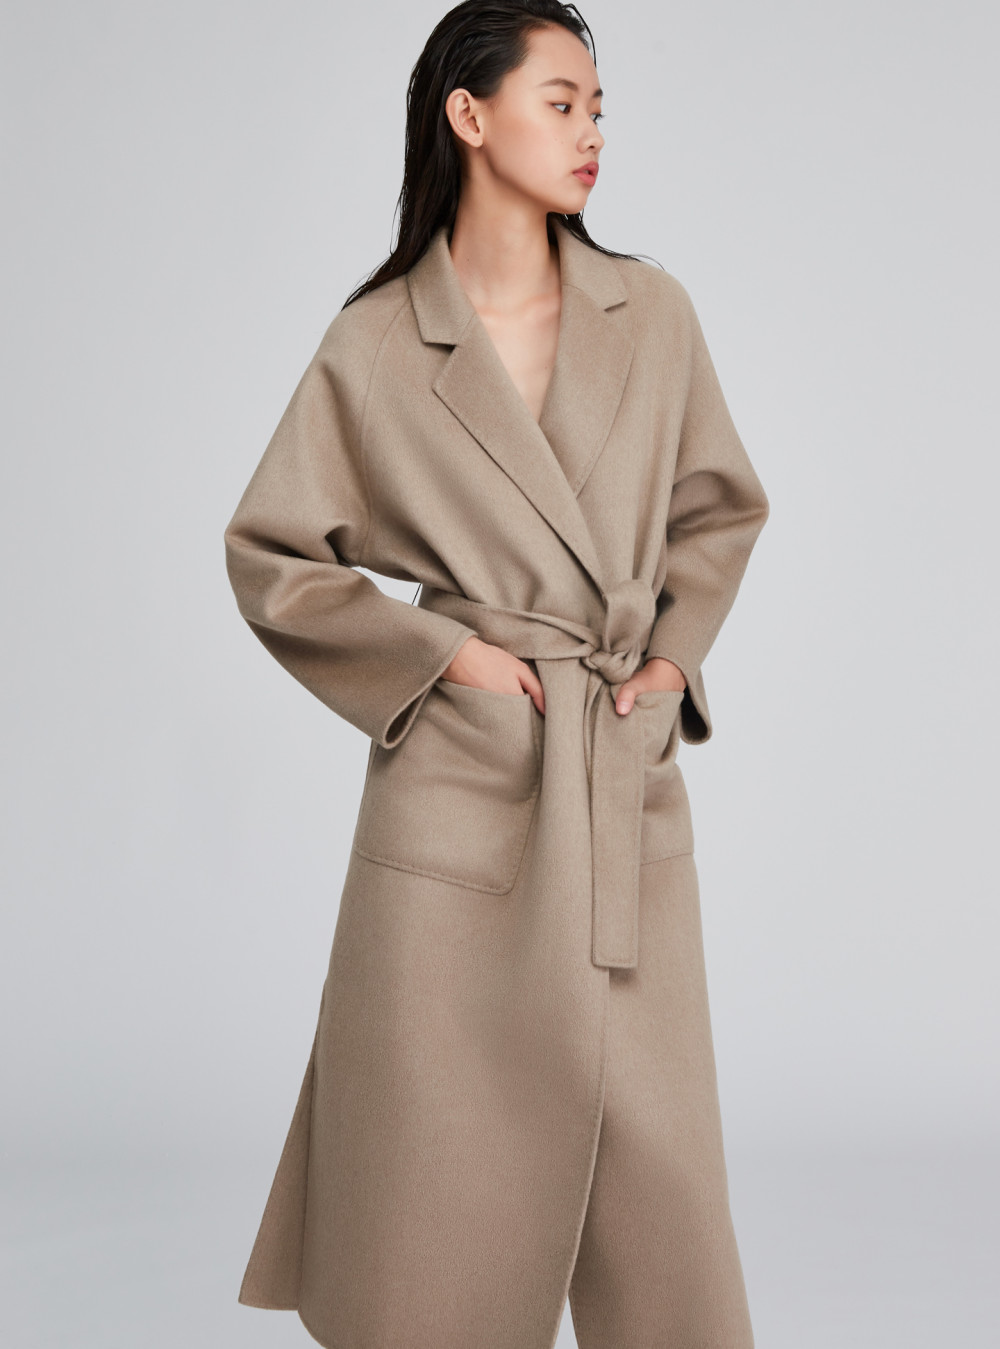 Icicle Women Styles Push Aircoat